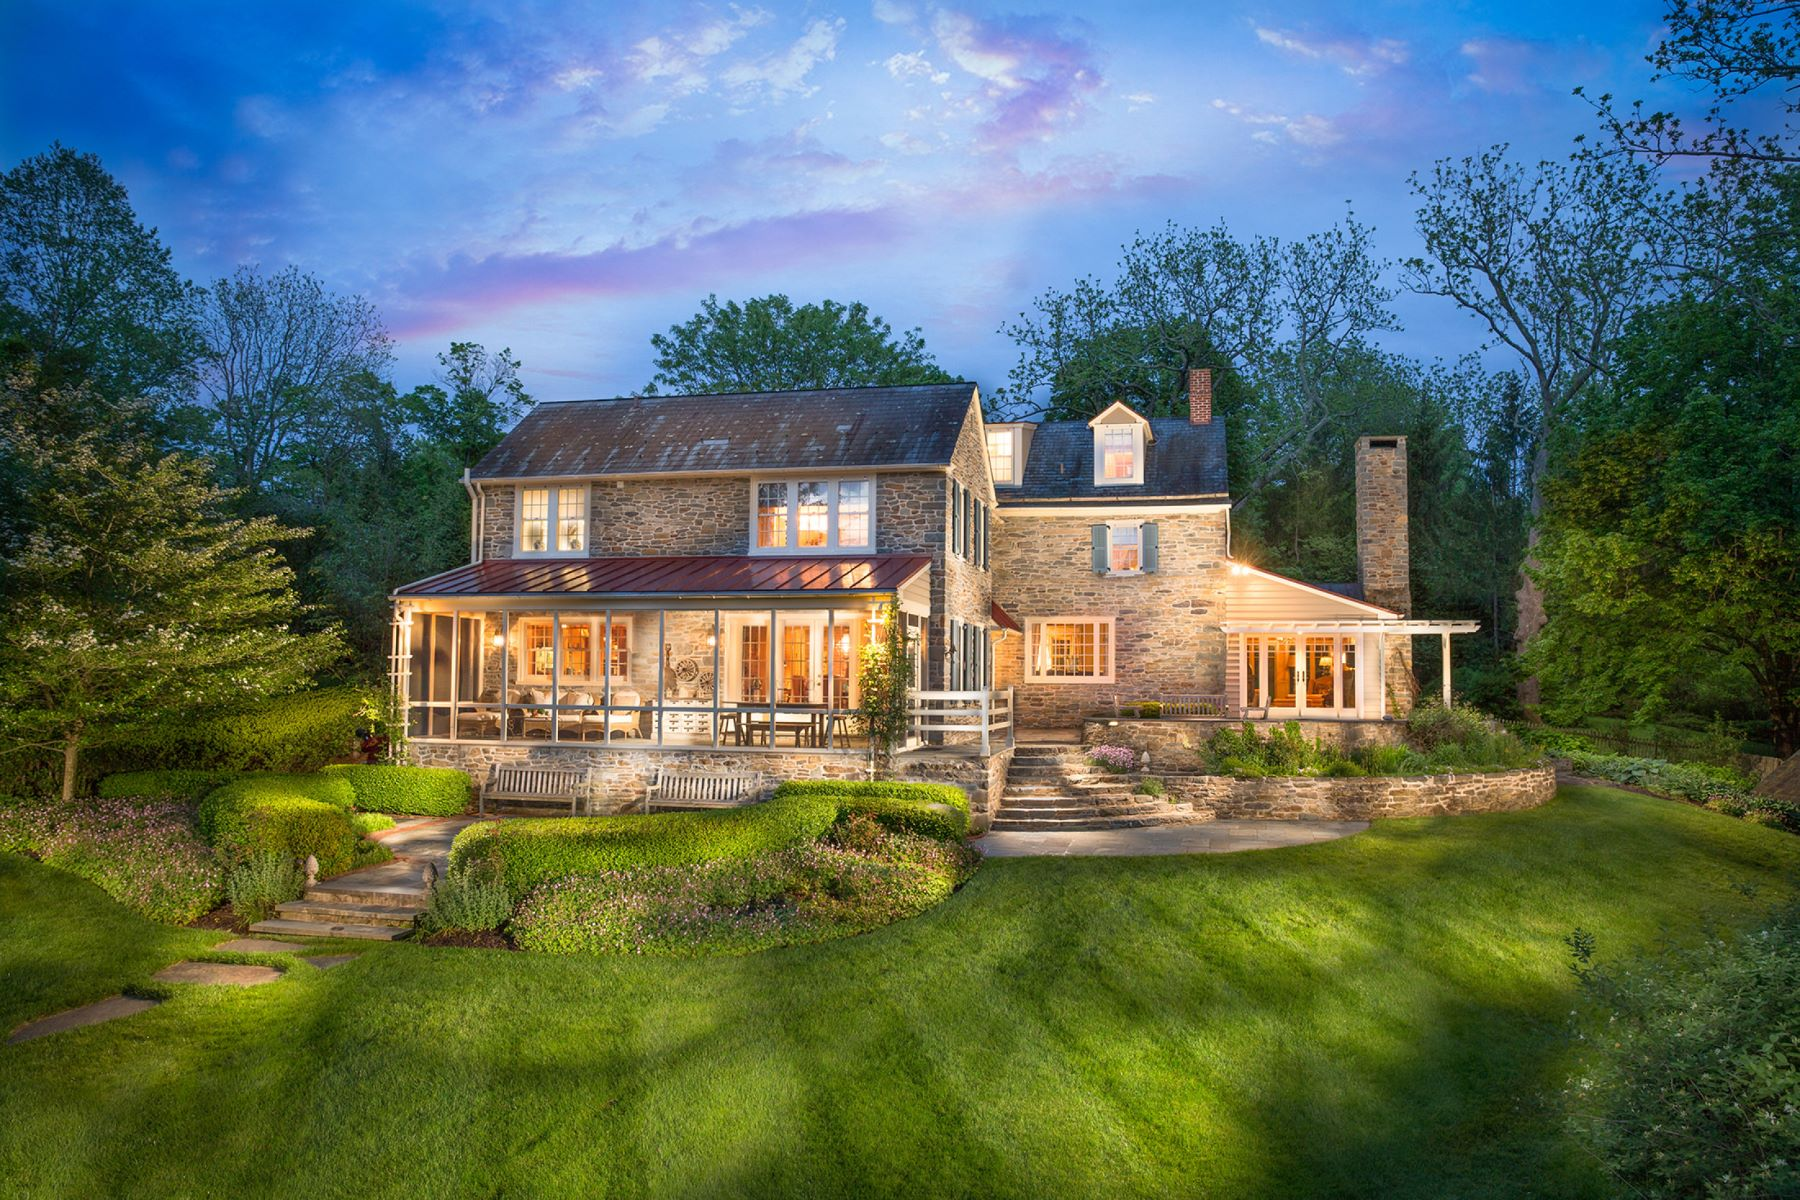 Single Family Home for Sale at Merestone Farm: A Waterfront Estate 2500 THREE MILE RUN RD Perkasie, 18944 United States